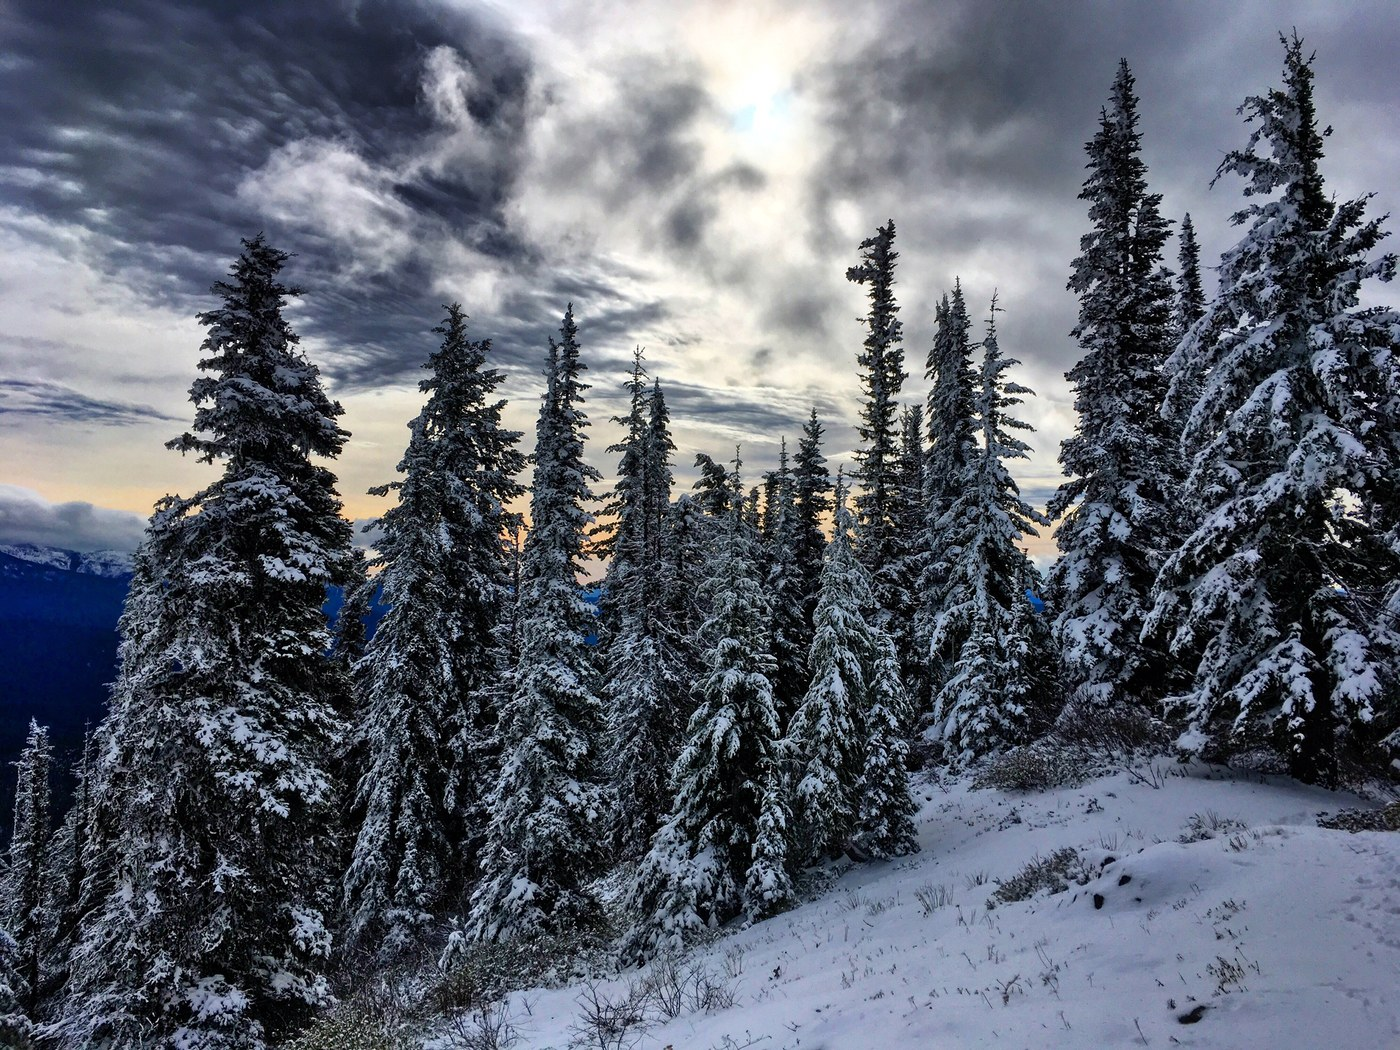 Snow capped trees in the Teanaway.